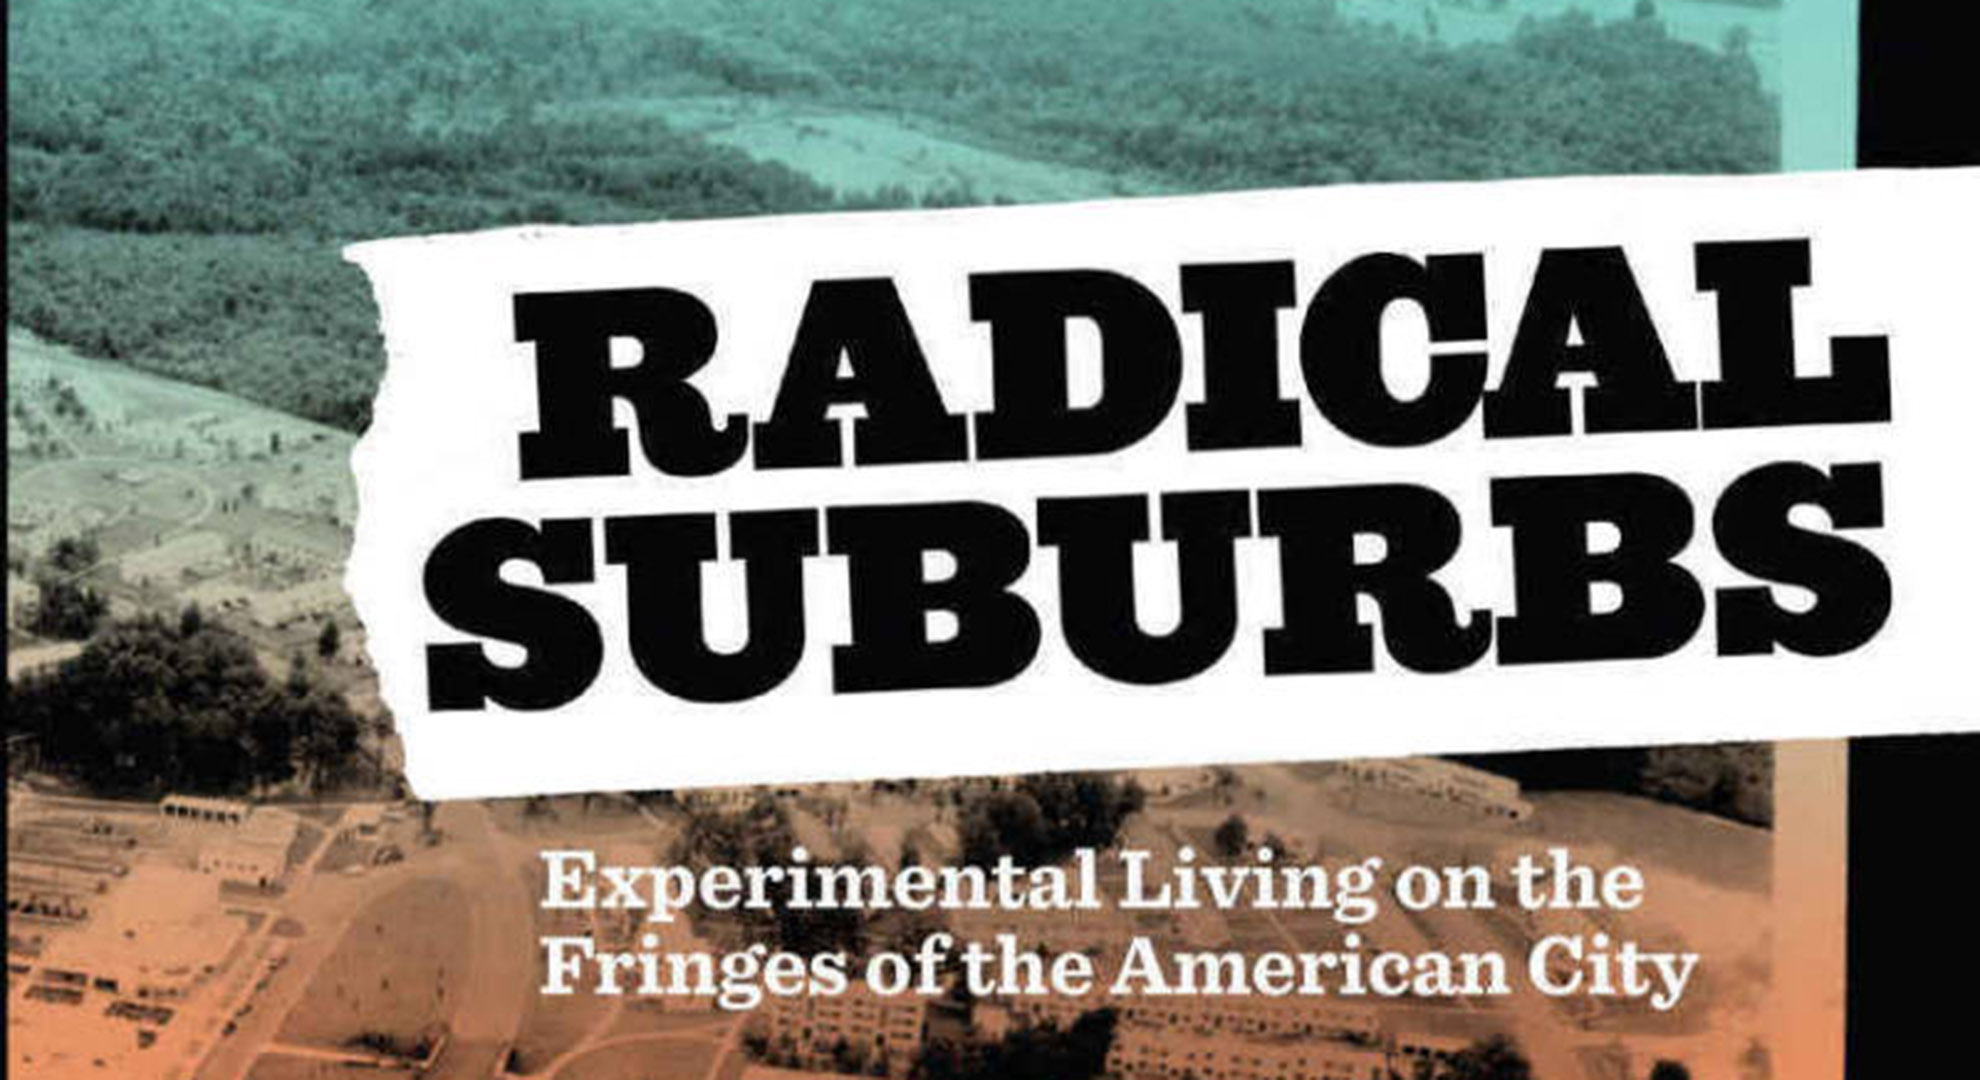 Book: Radical Suburbs